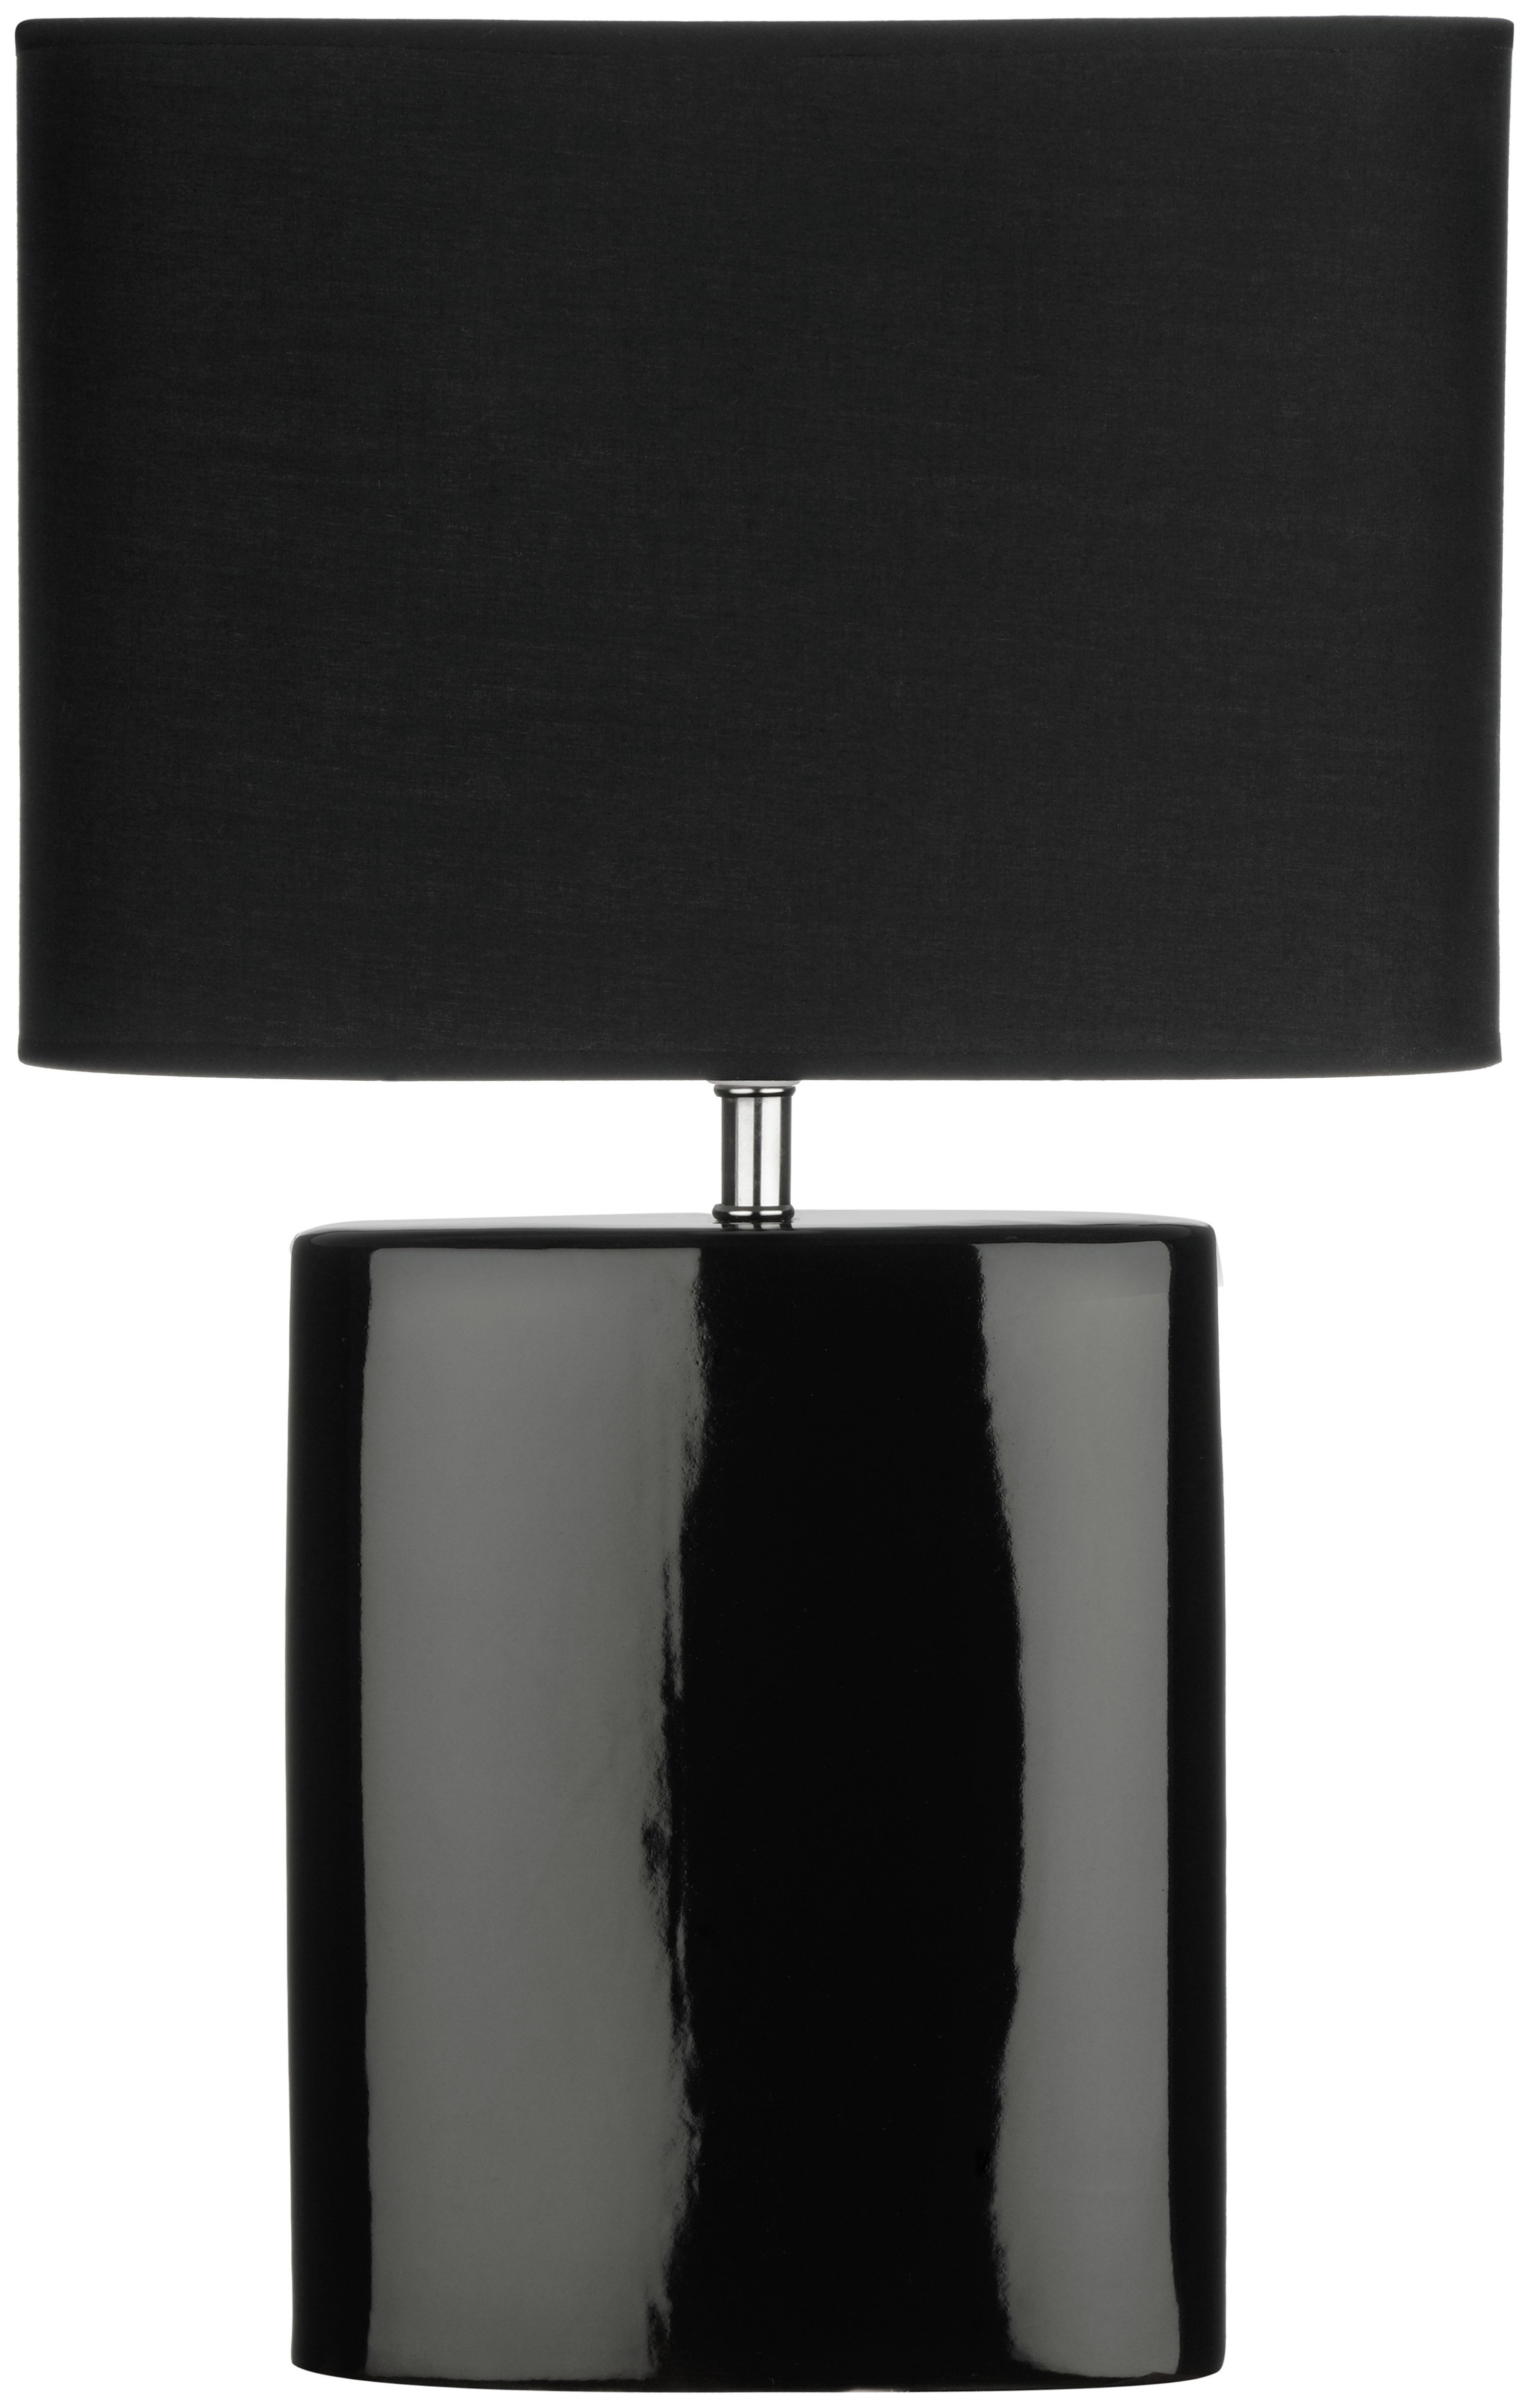 Image of Ellipse Table Lamp with Black Shade.